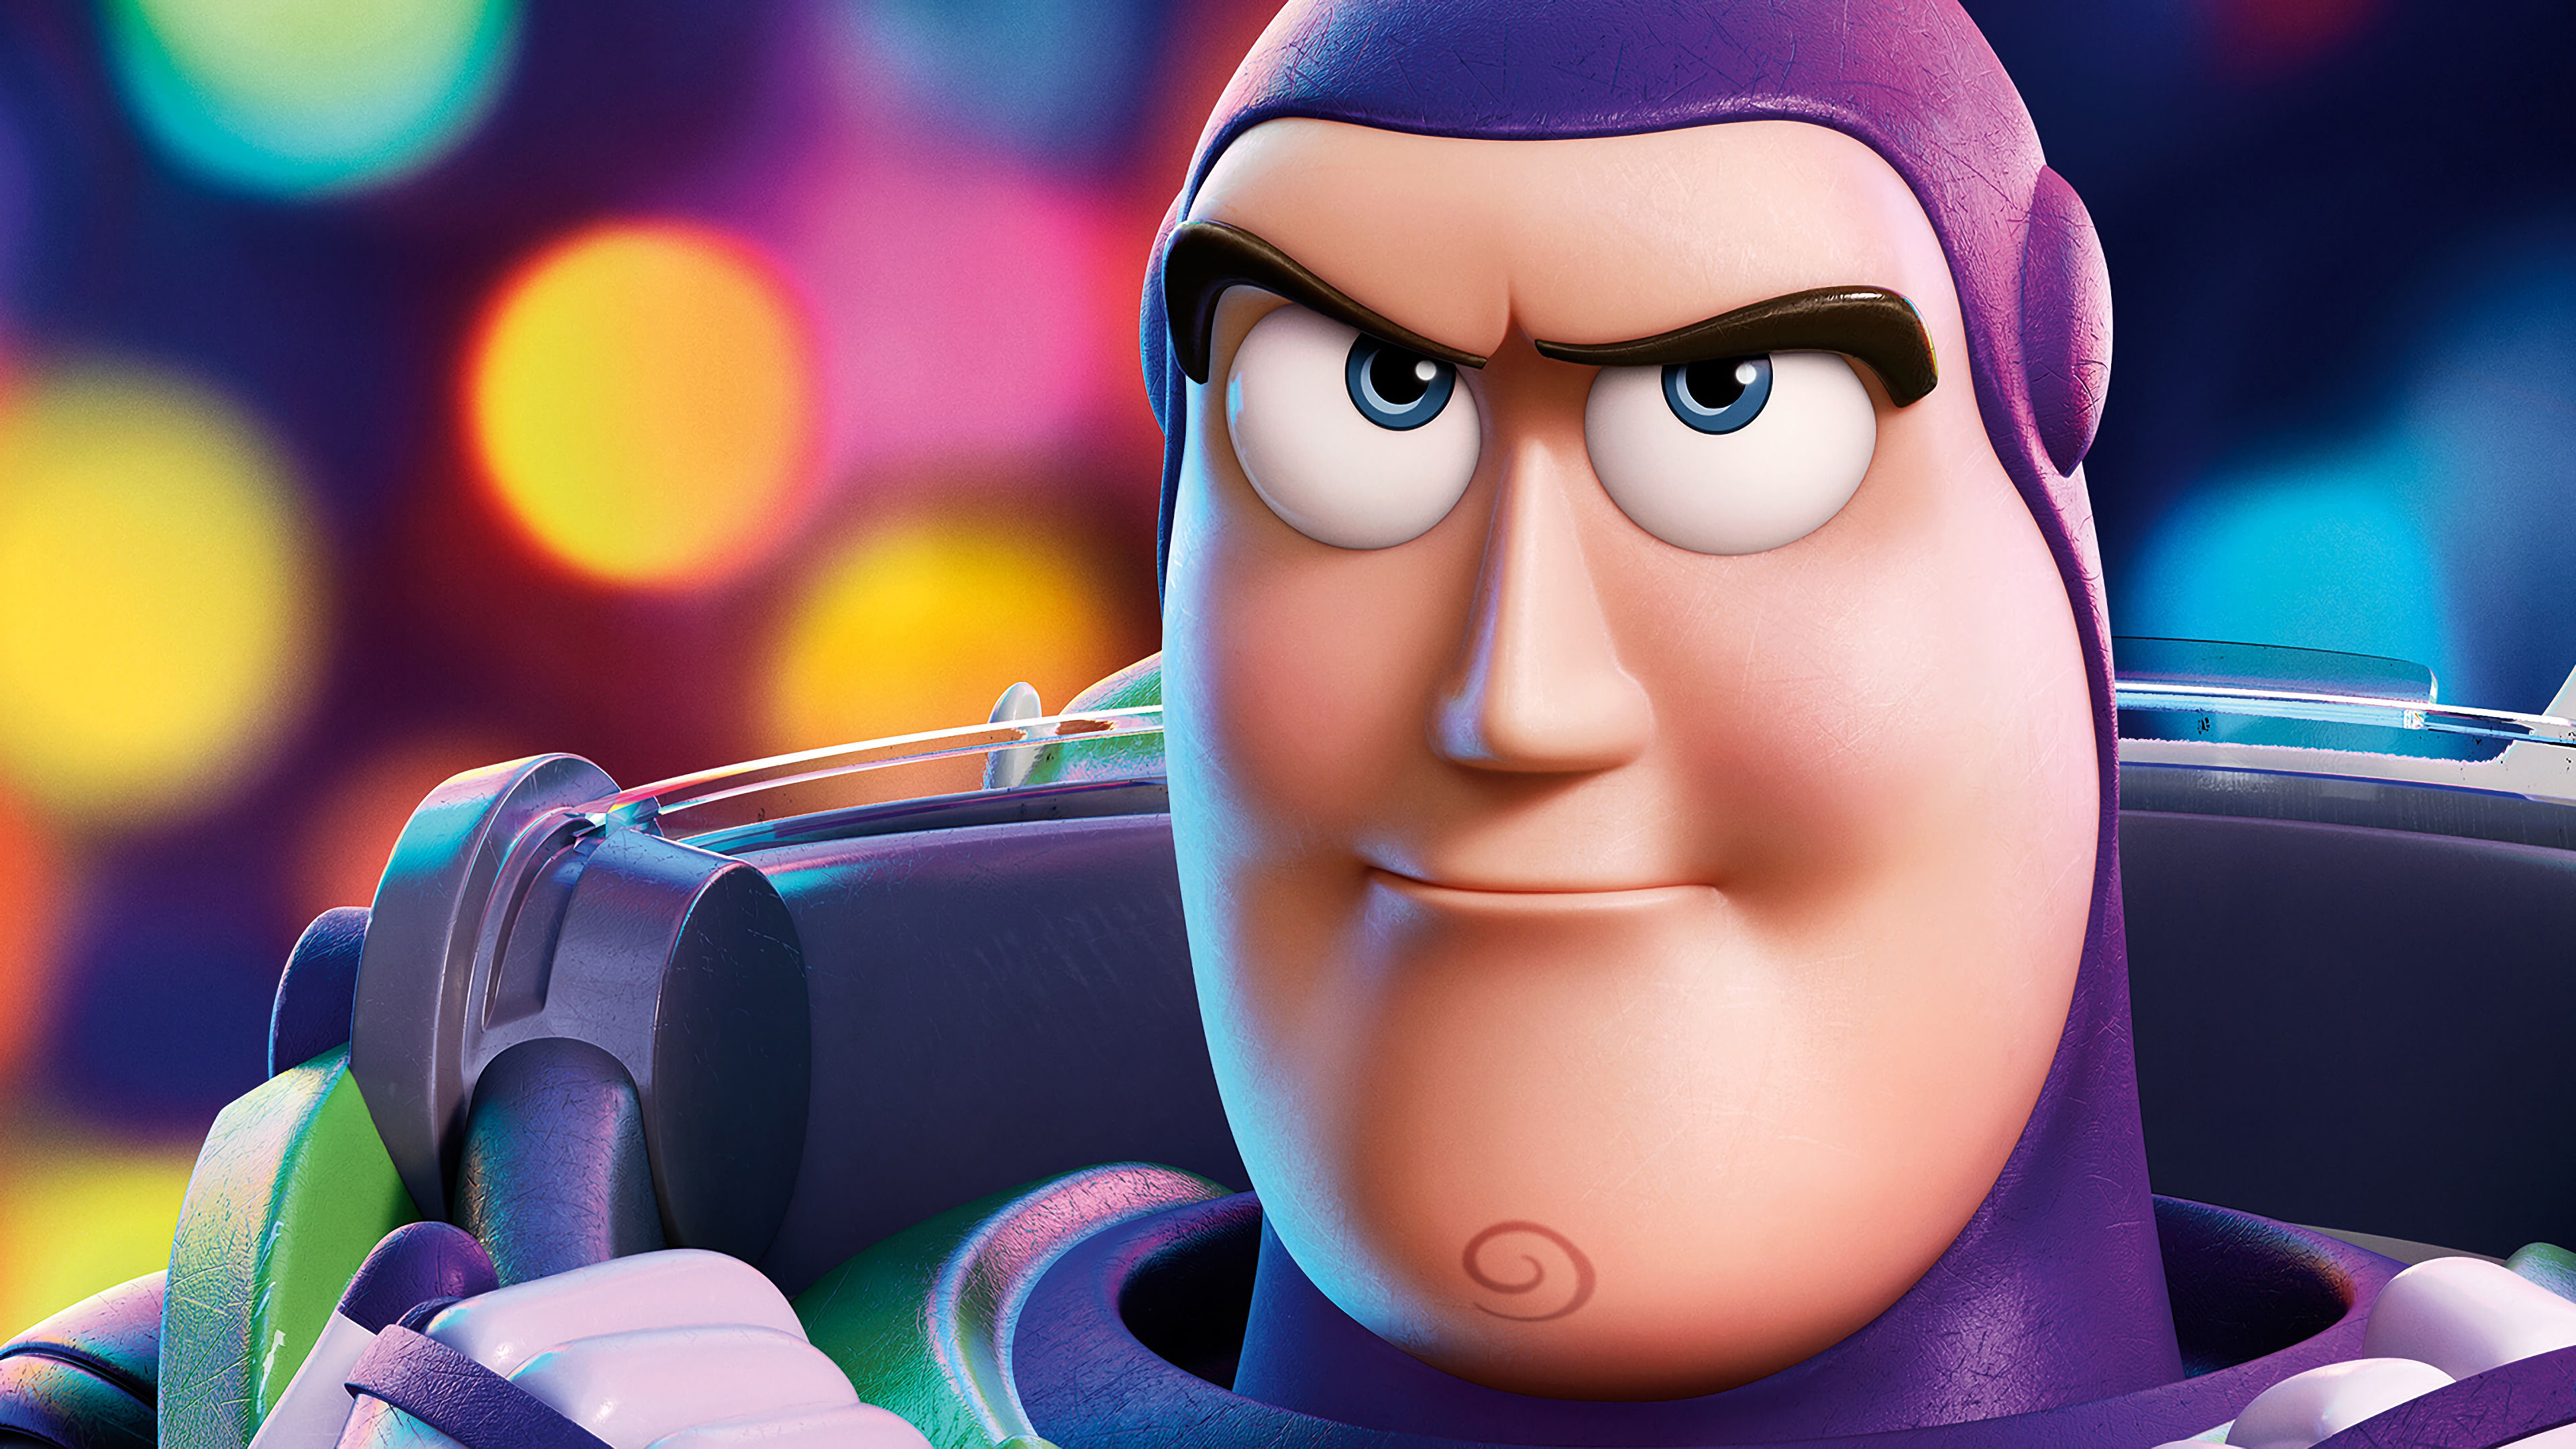 Toy Story 4 Buzz Lightyear Wallpaper 4k Ultra Hd Id3324